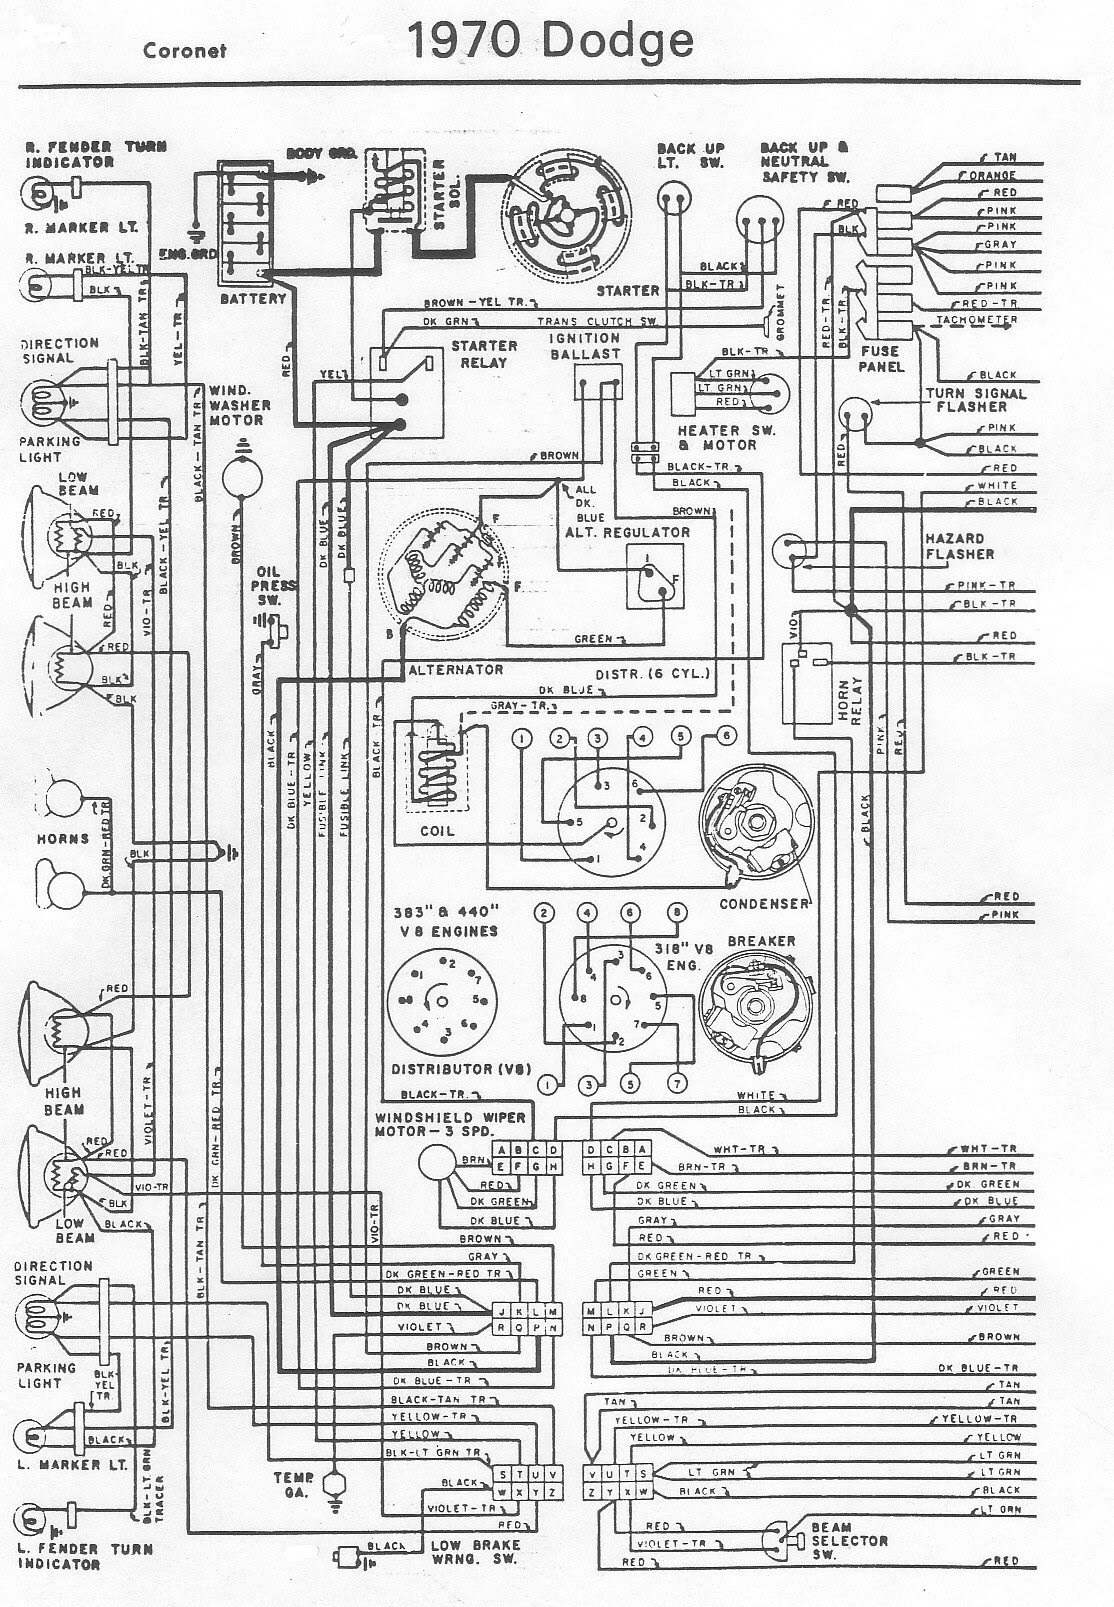 Diagram 1950 Dodge Coronet Wiring Diagram Full Version Hd Quality Wiring Diagram 123wiringdiagram Potrosuaemfc Mx